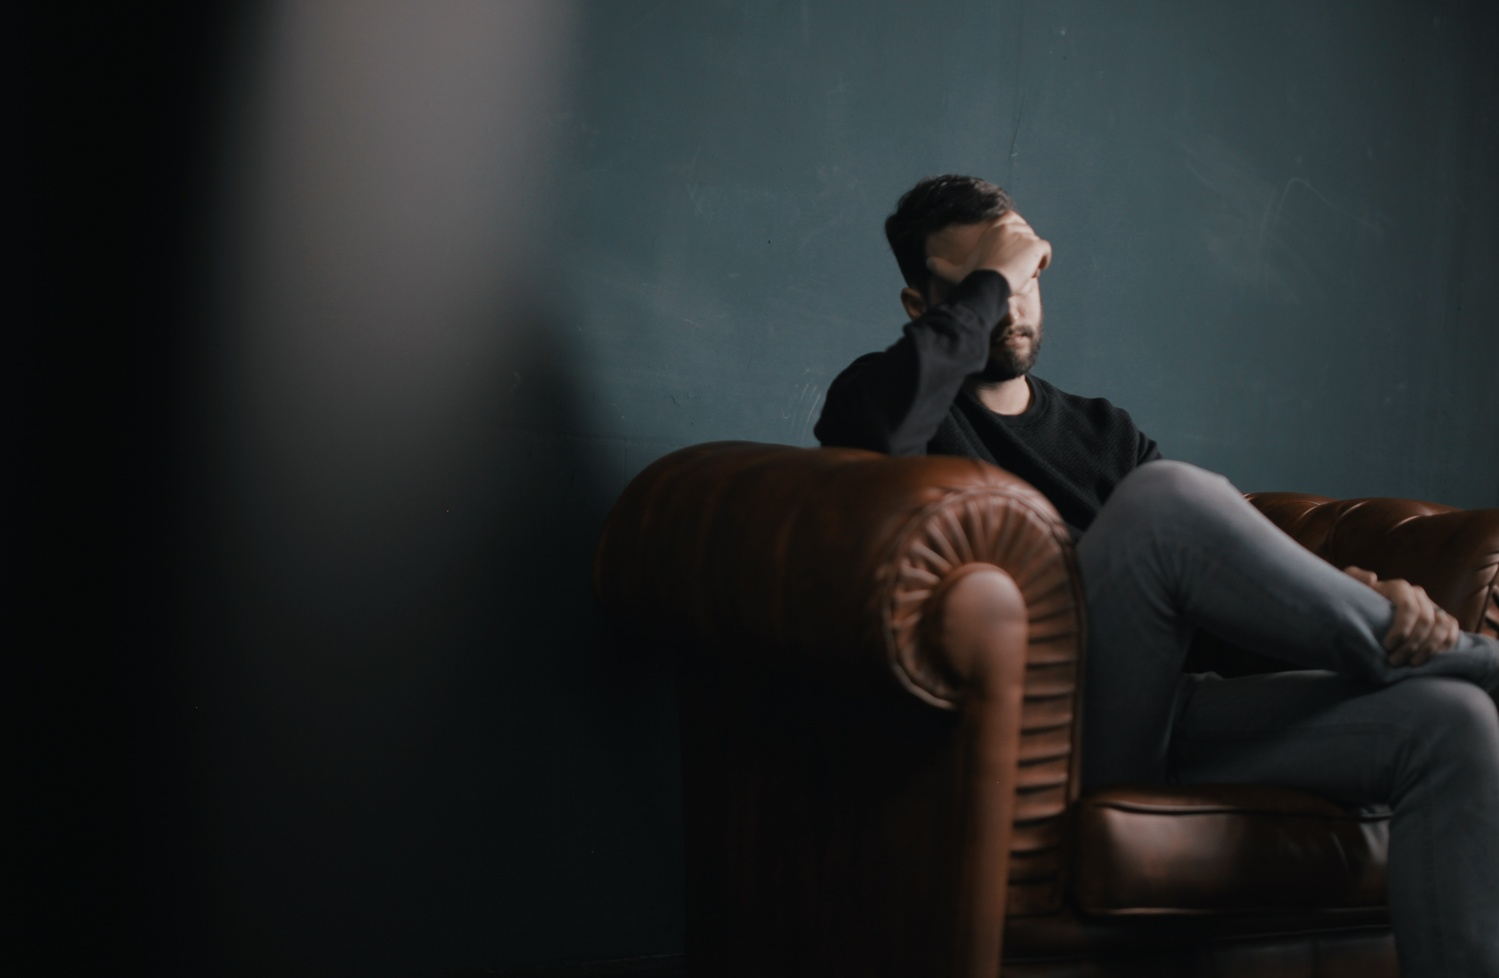 Man is stressed because of Instagram addiction